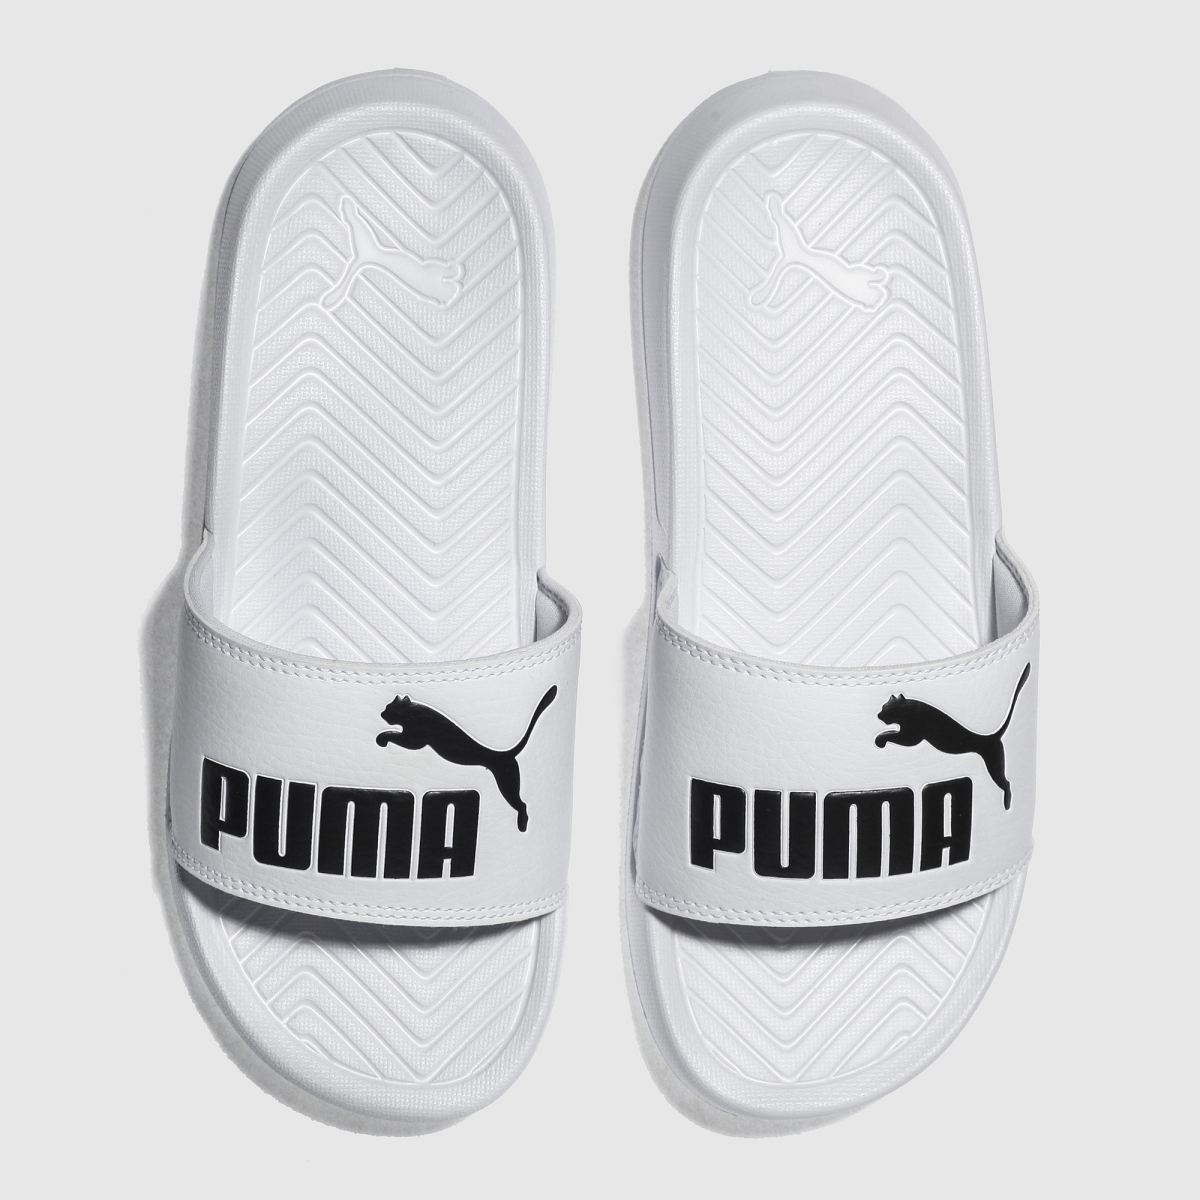 Puma White Popcat Youth Sandals